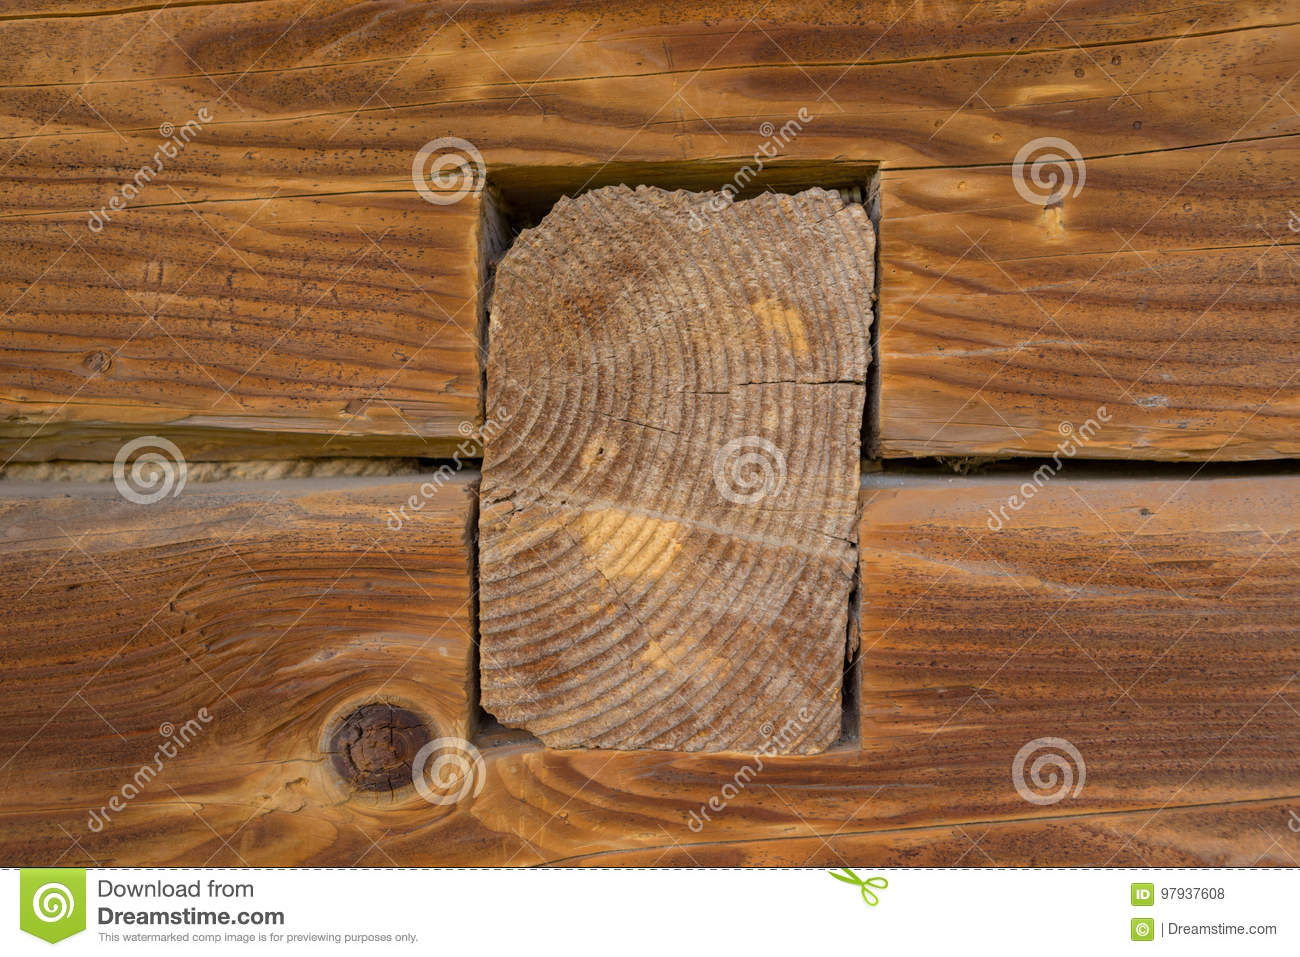 Royalty-Free Stock Photo & The Old Castle On The Old Doors Old House Stock Photo - Image ... Pezcame.Com